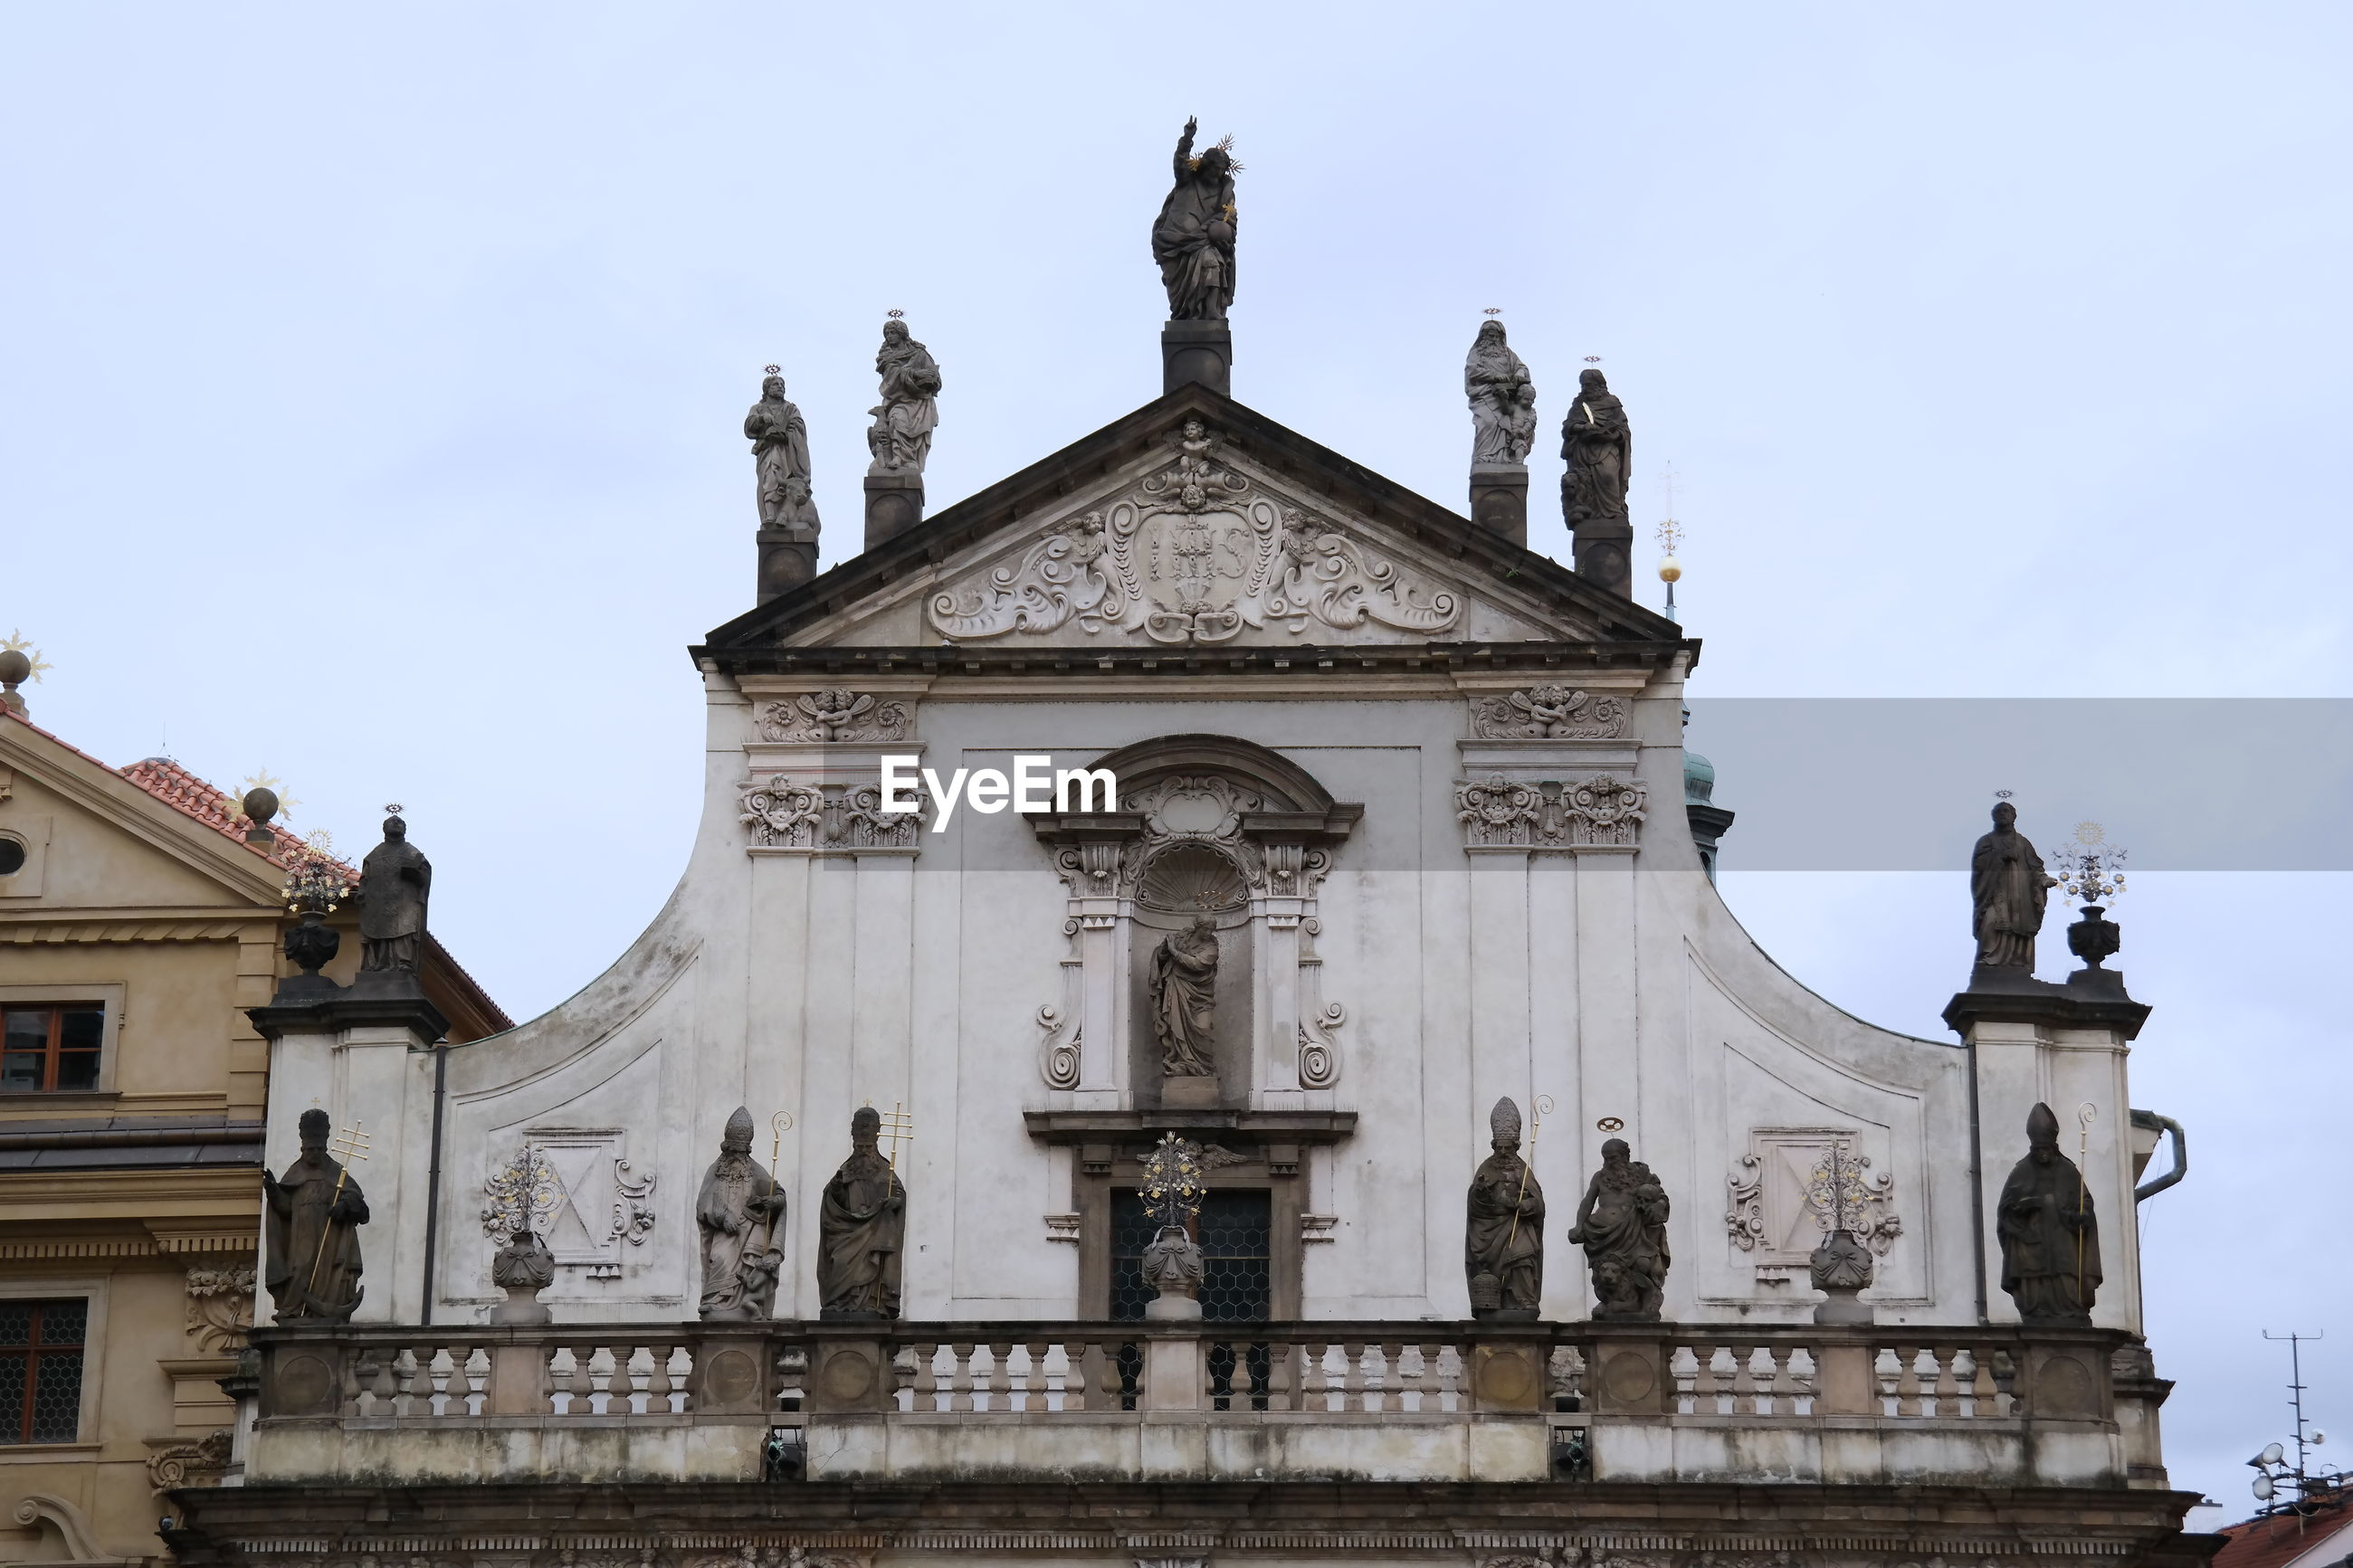 STATUES OF A BUILDING